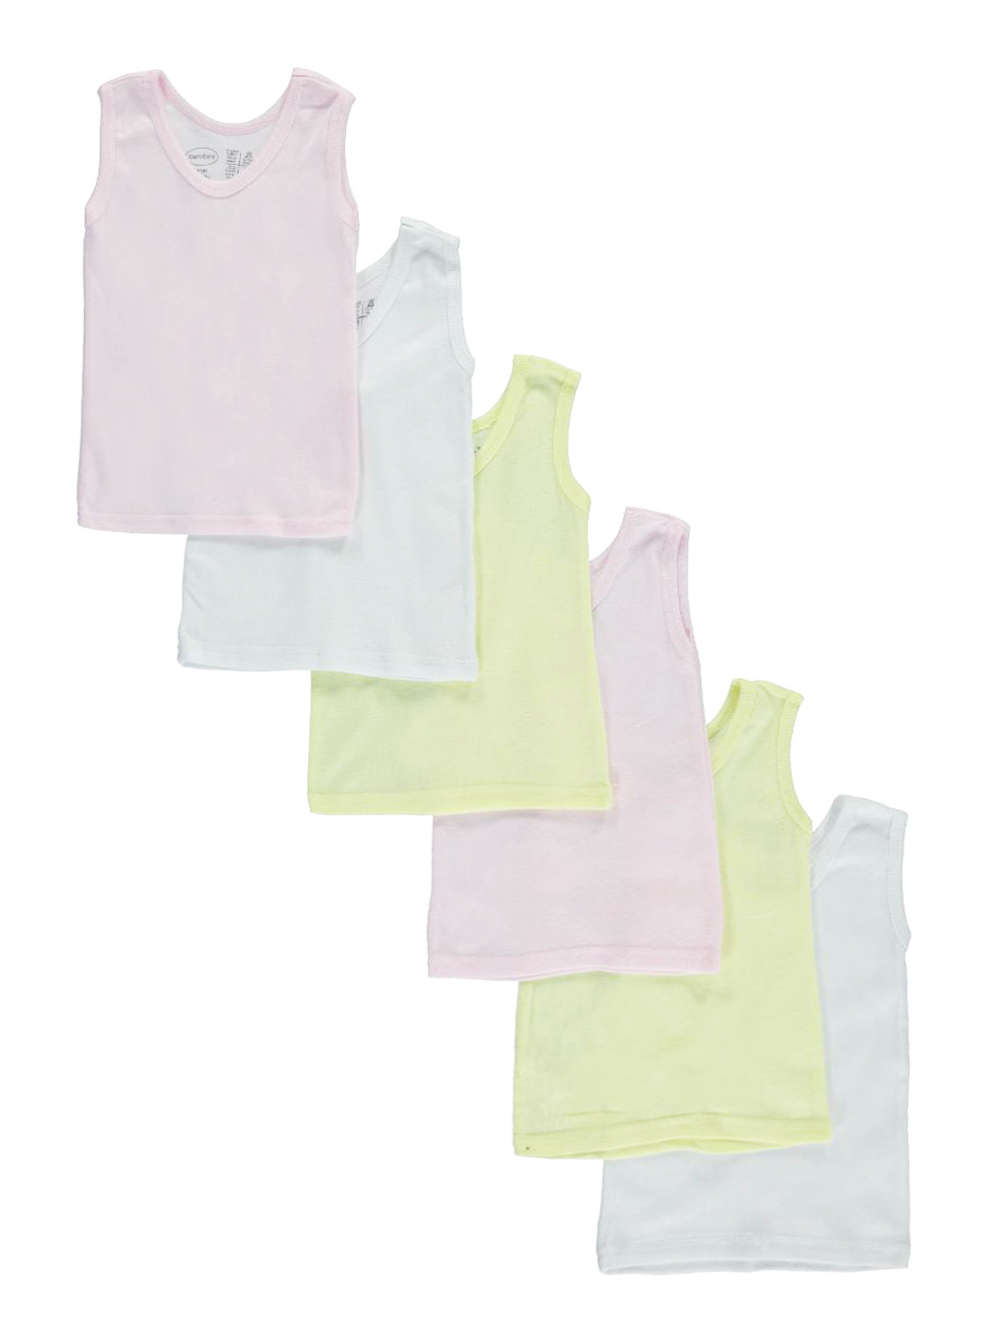 Girls Pink Undershirts